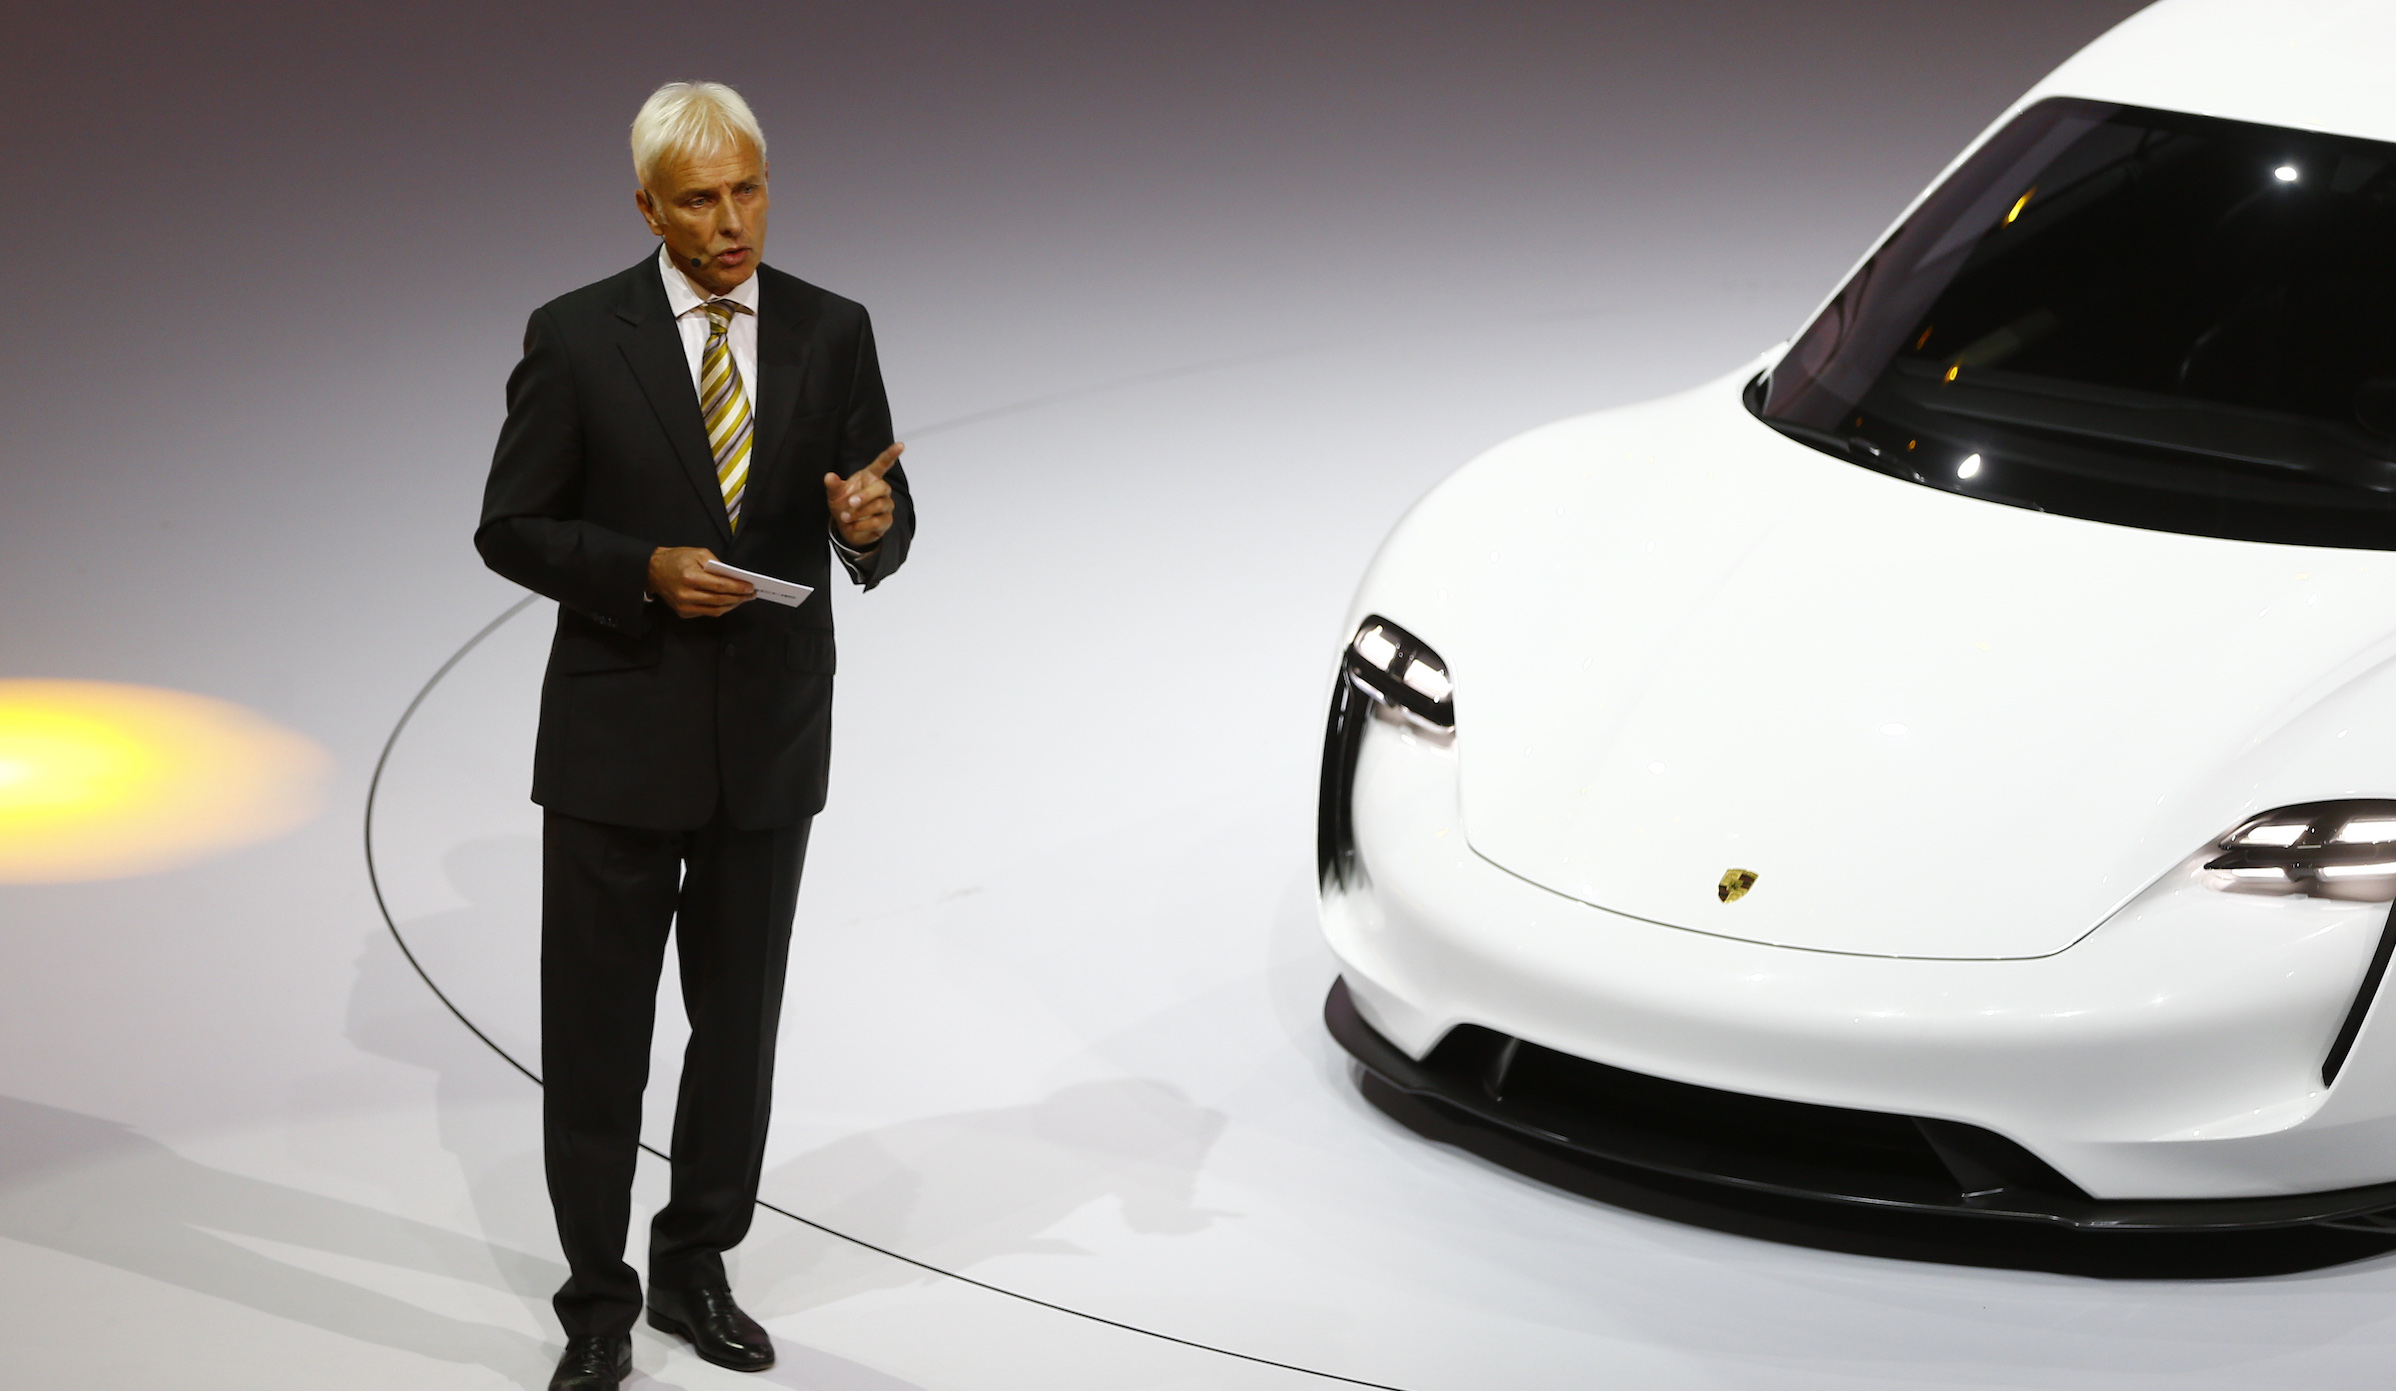 Porsche CEO Matthias Mueller presents the new electric Porsche Mission E concept car during the Volkswagen group night ahead of the Frankfurt Motor Show (IAA) in Frankfurt, Germany, September 14, 2015.     REUTERS/Kai Pfaffenbach   - RTS134L